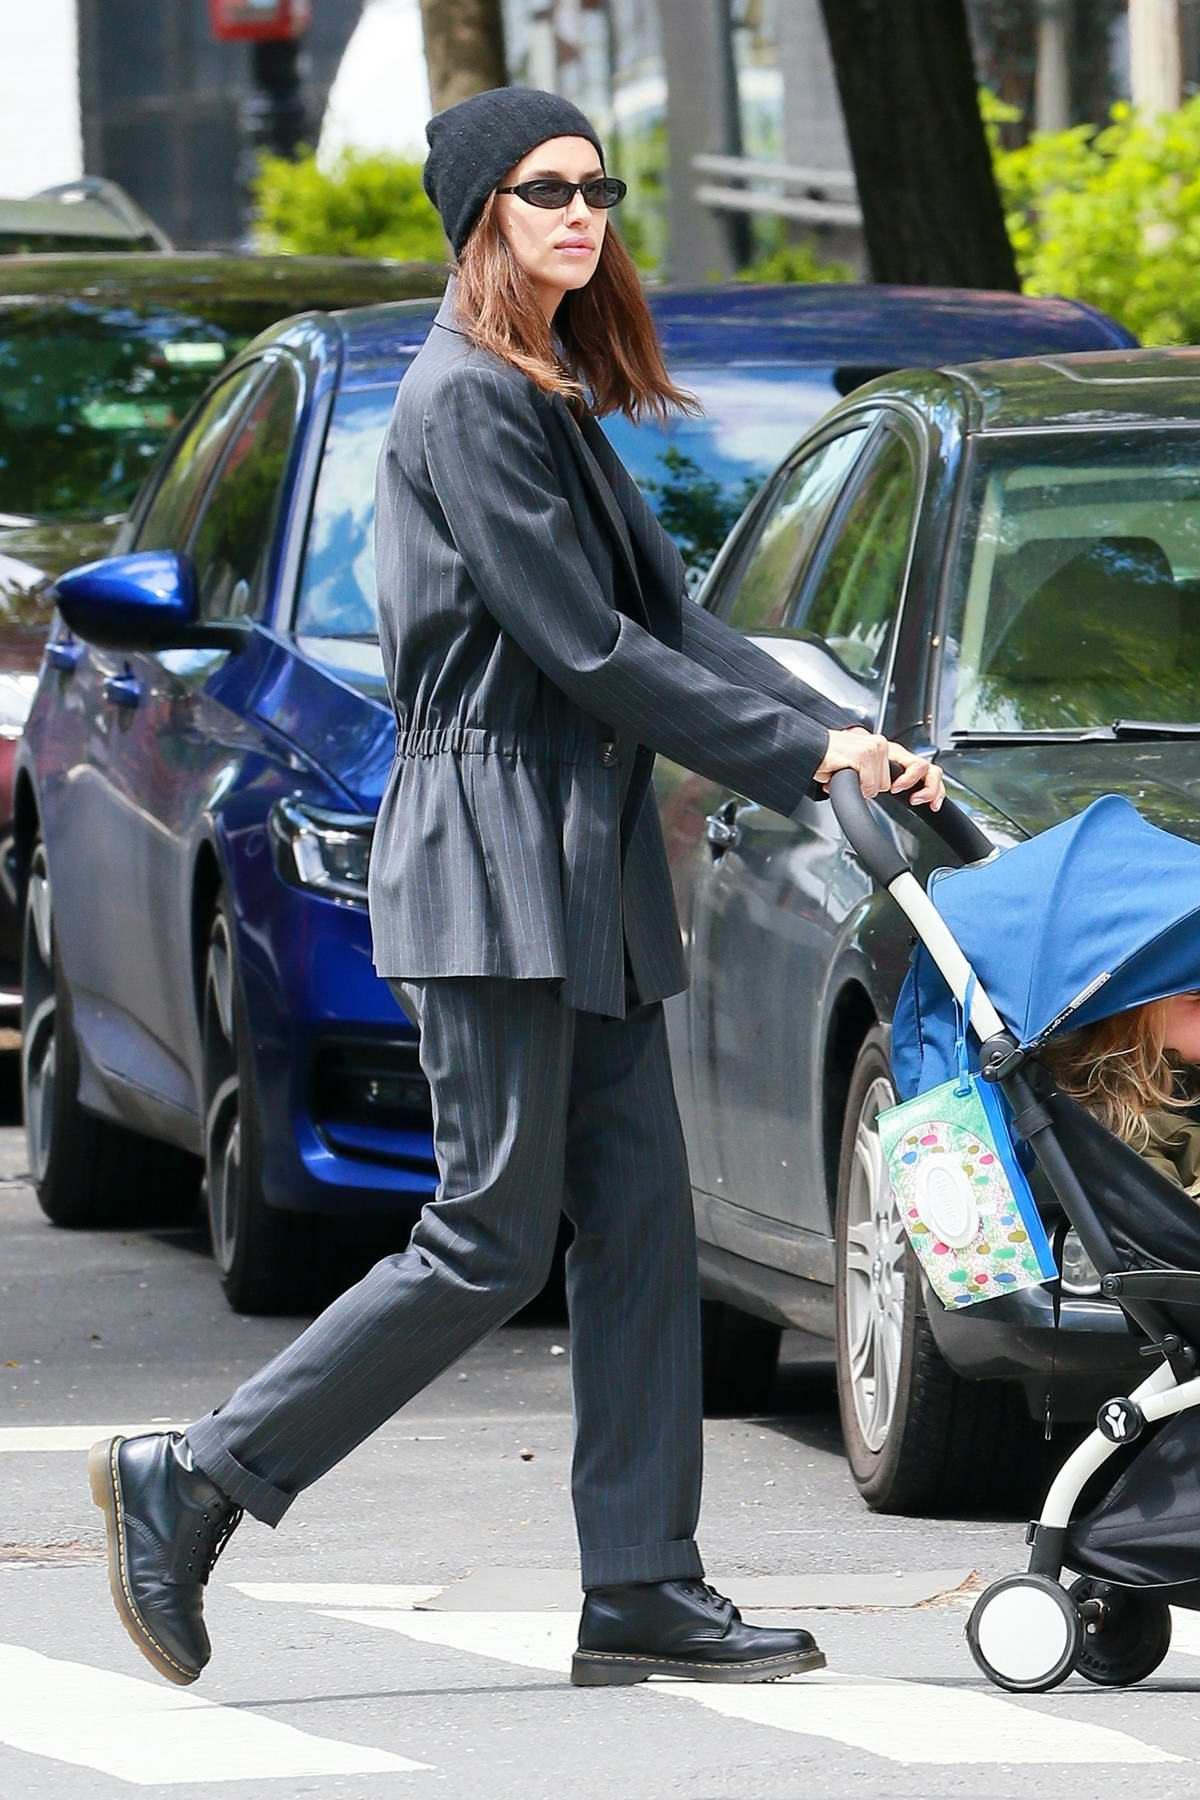 Irina Shayk looks chic in a striped blazer while pushing her daughter Lea around in a stroller in New York City